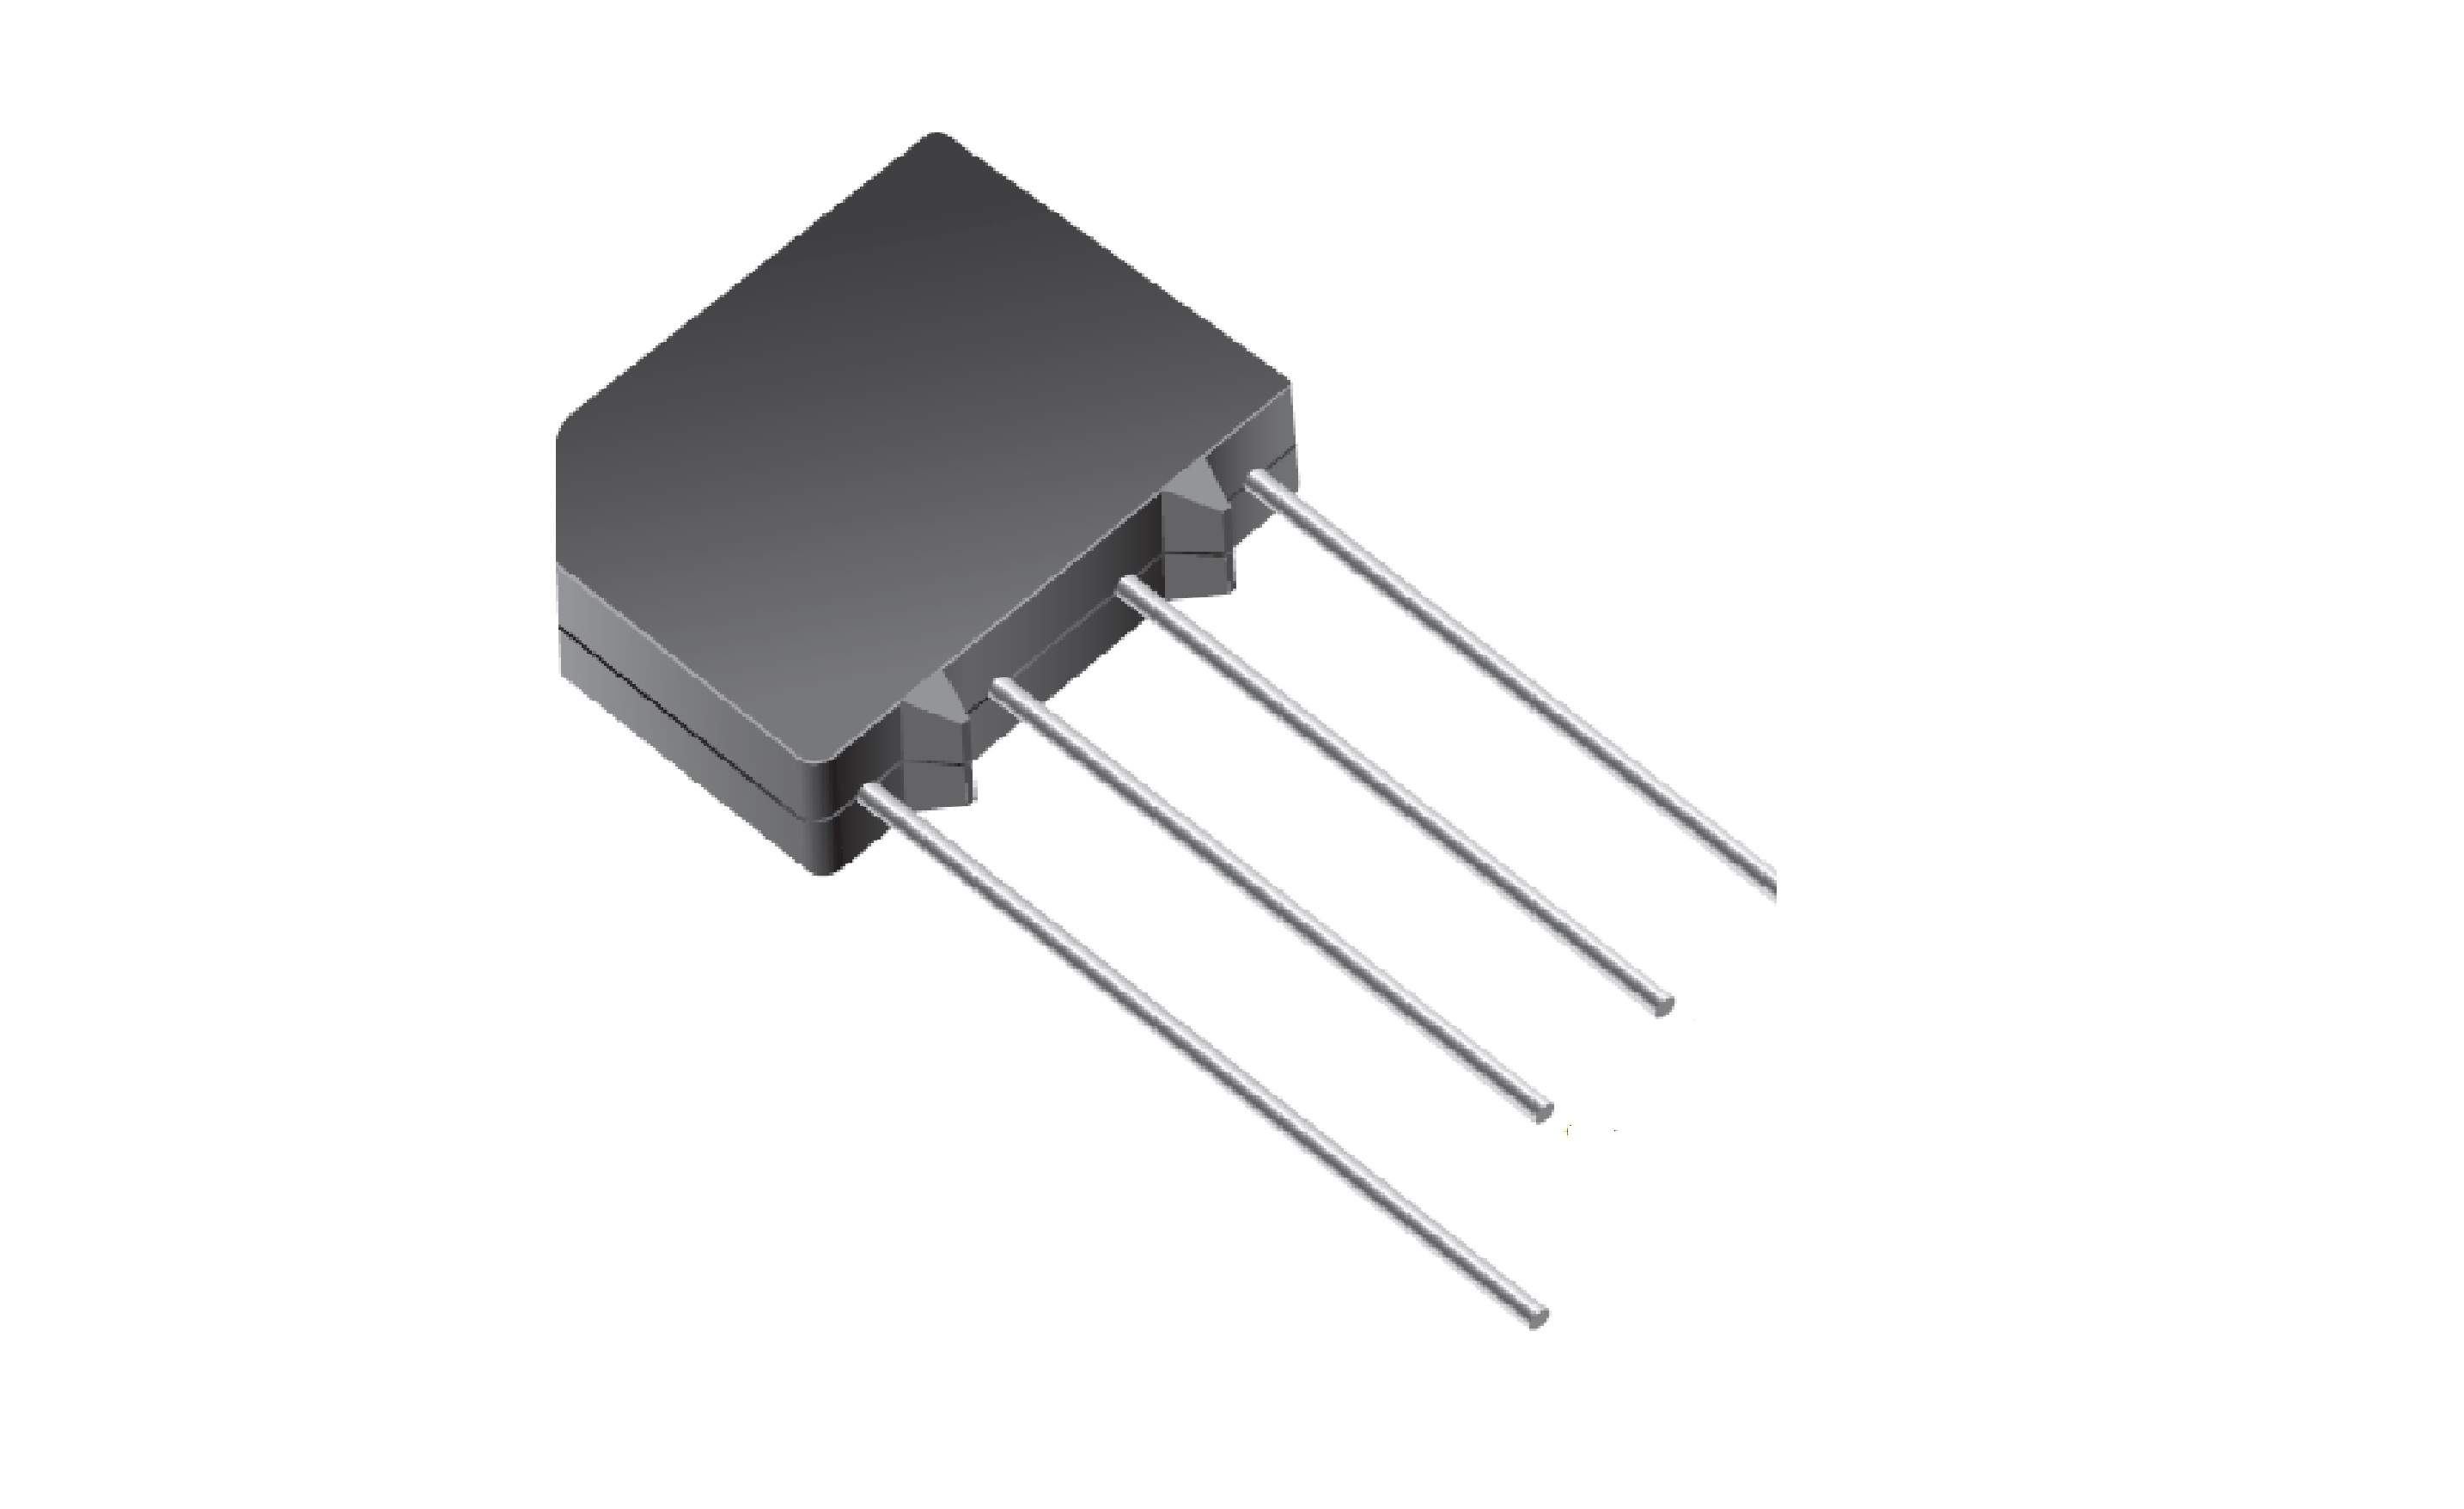 Fairchild Semi Taitron Internet Super Store Tiss The Two Diodes Are Part Of 37 A Bridge Rectifier Used In Circuit Manufacturer Packing Method Tube Pack Status Full 30 Rohs N Description Glass Passivated Rectifiers20a 1000v